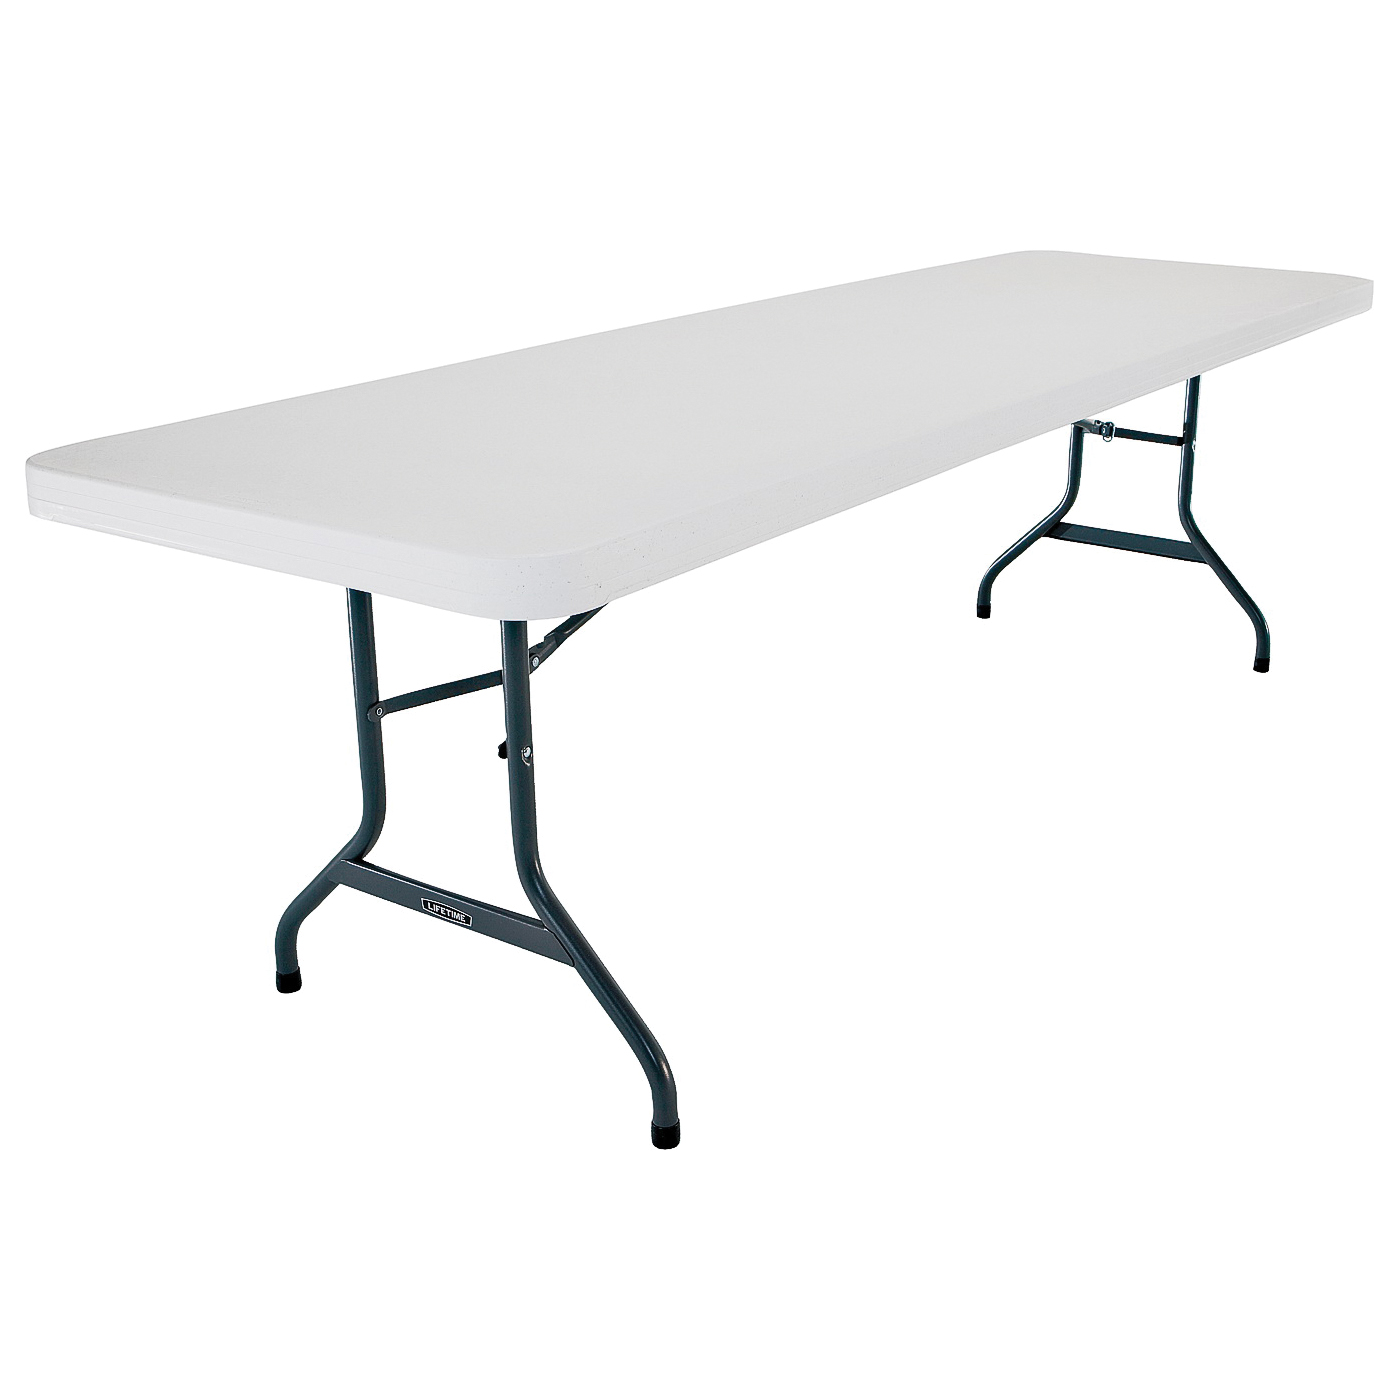 Picture of Lifetime Products 2980 Folding Table, Steel Frame, Polyethylene Tabletop, Gray/White